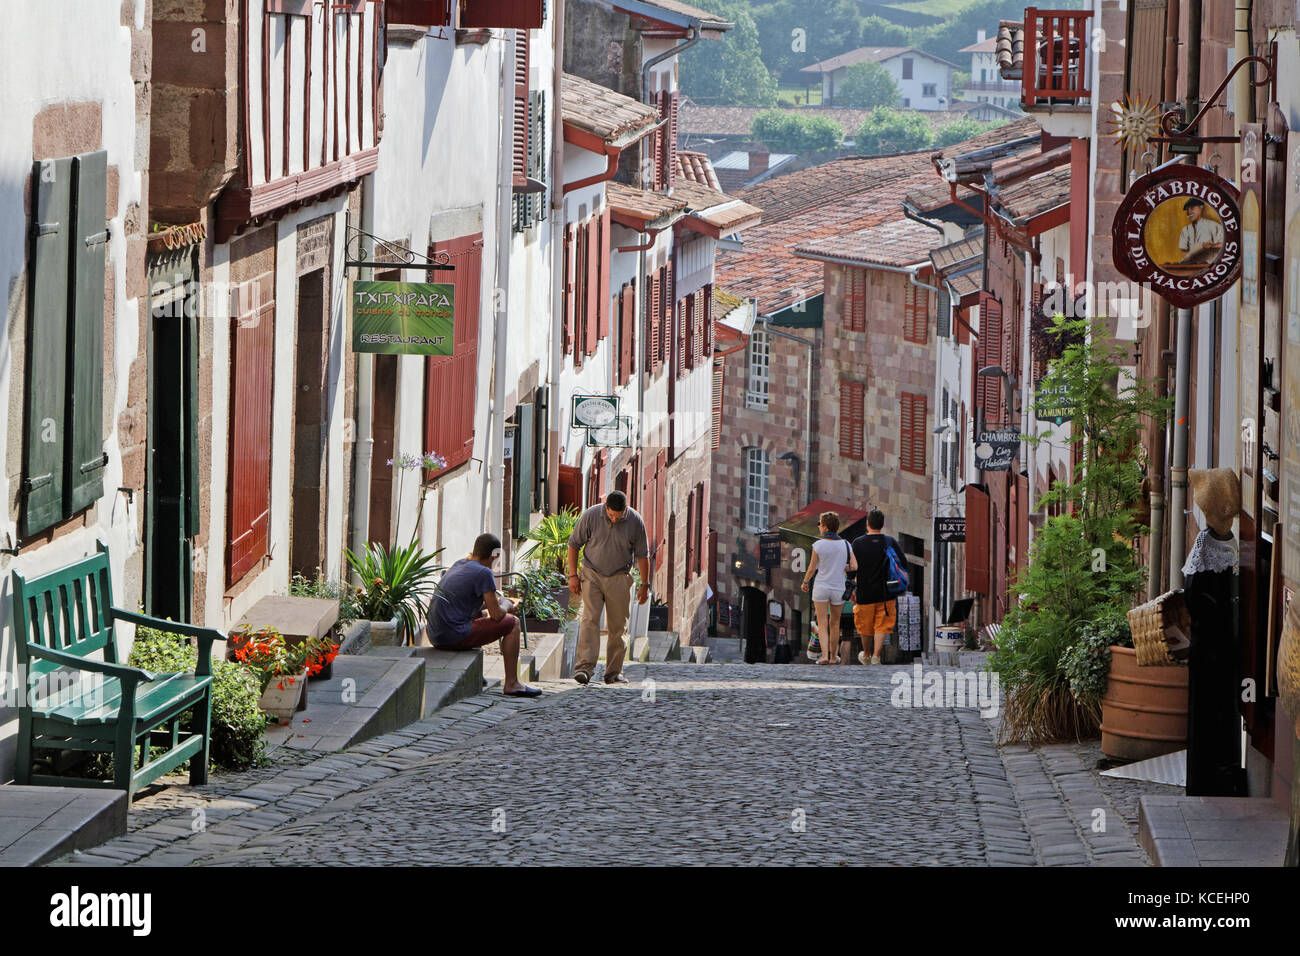 Saint jean pied de port stock photos saint jean pied de port stock images alamy - Hotels in saint jean pied de port france ...